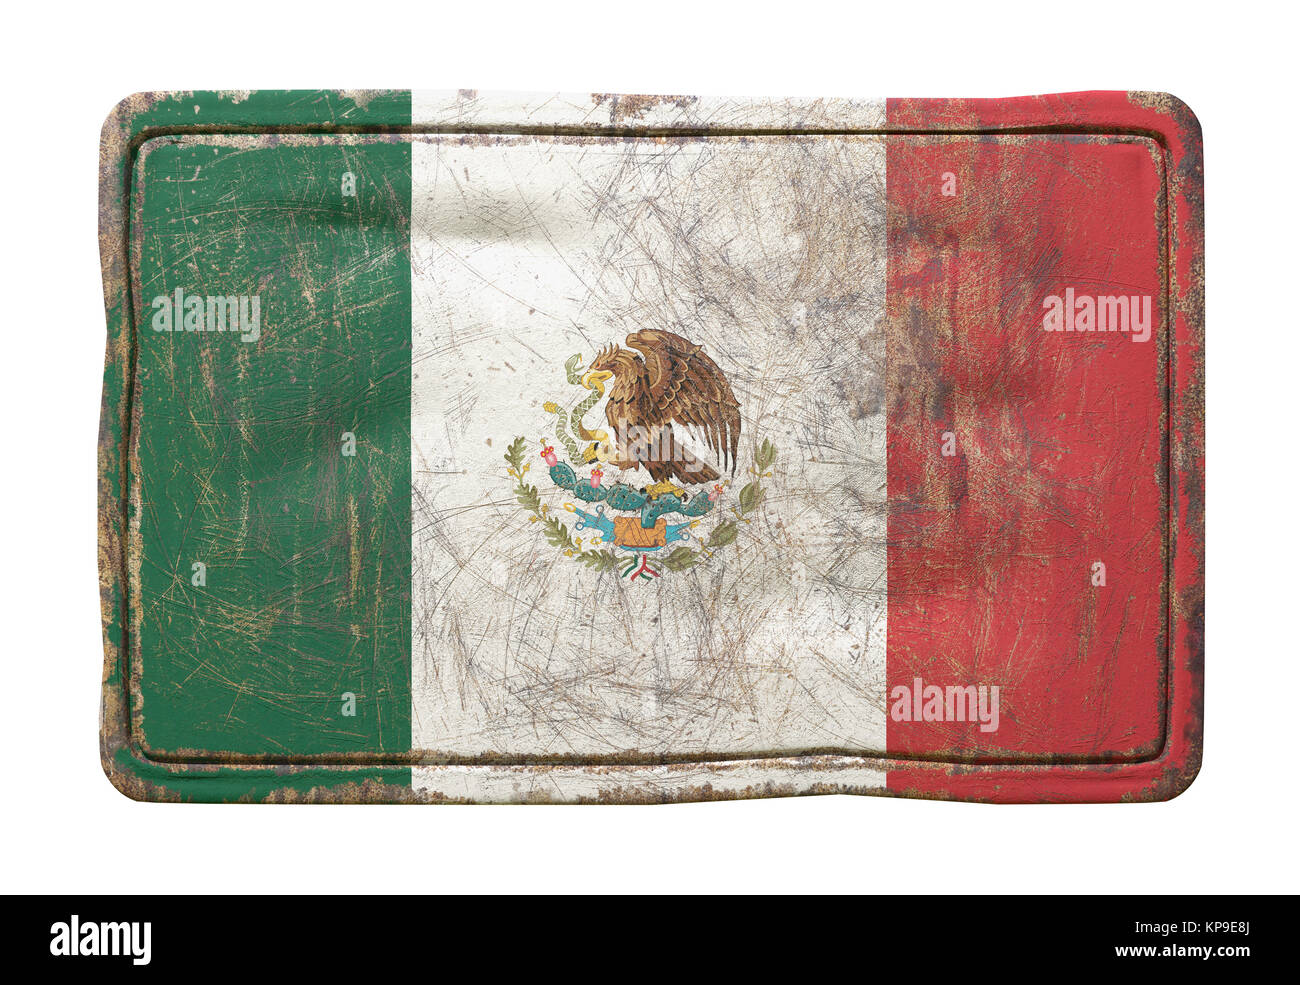 3d rendering of a Mexico flag over a rusty metallic plate. Isolated on white background. - Stock Image